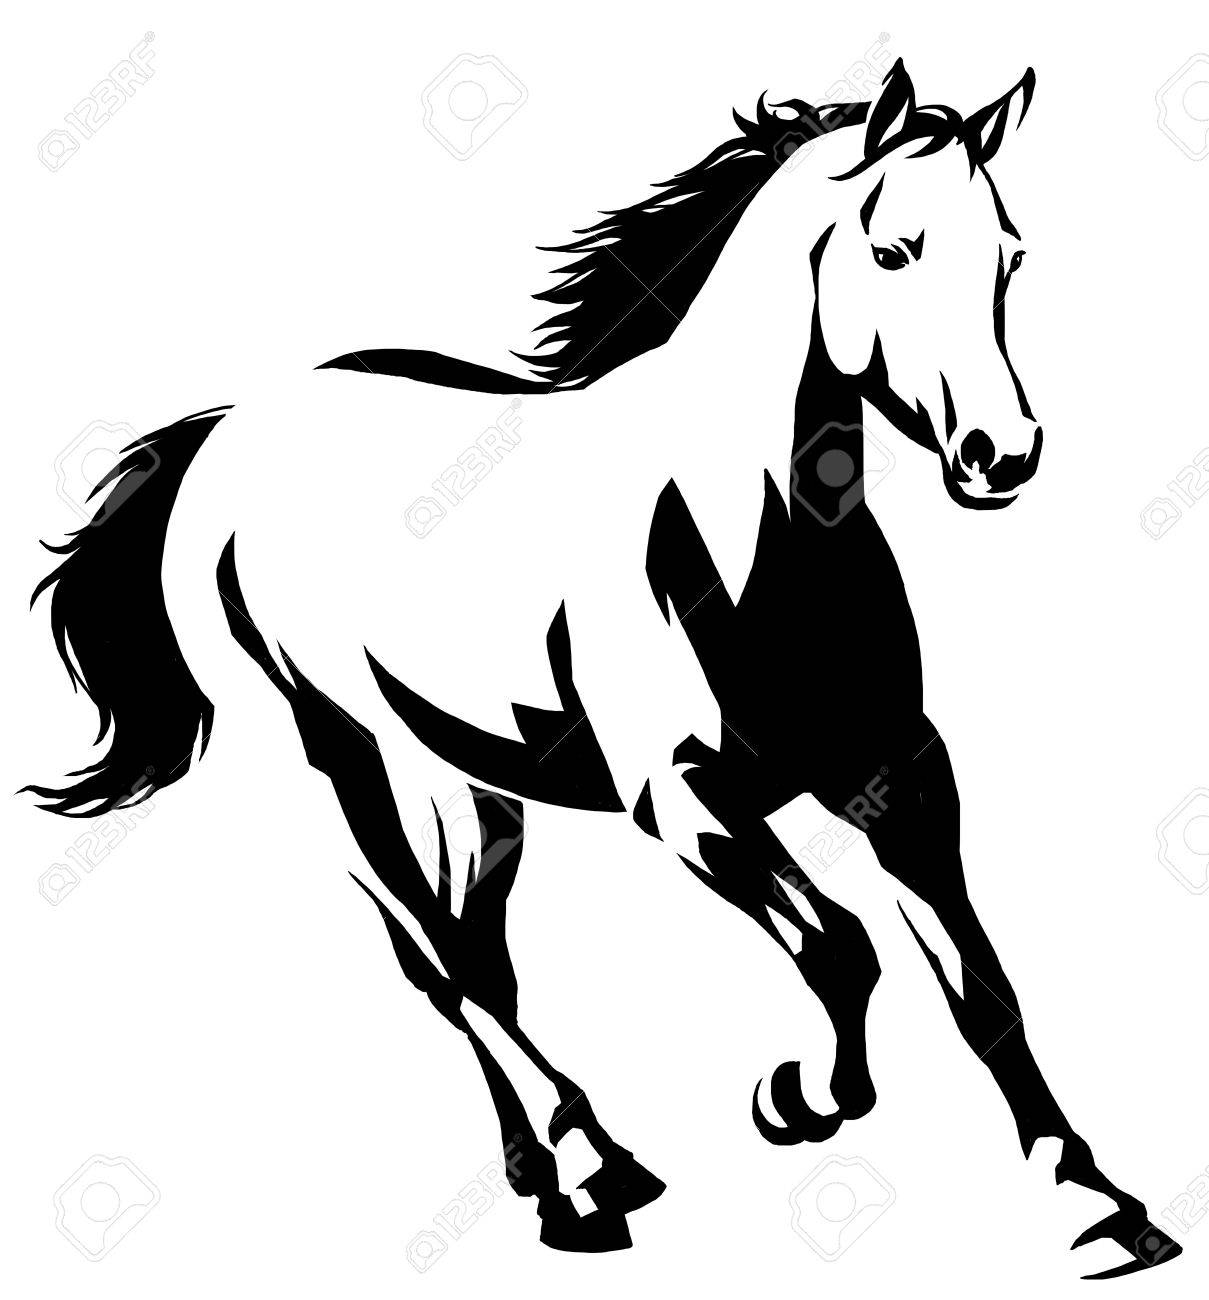 Black And White Linear Draw Horse Illustration Stock Photo Picture And Royalty Free Image Image 69447378